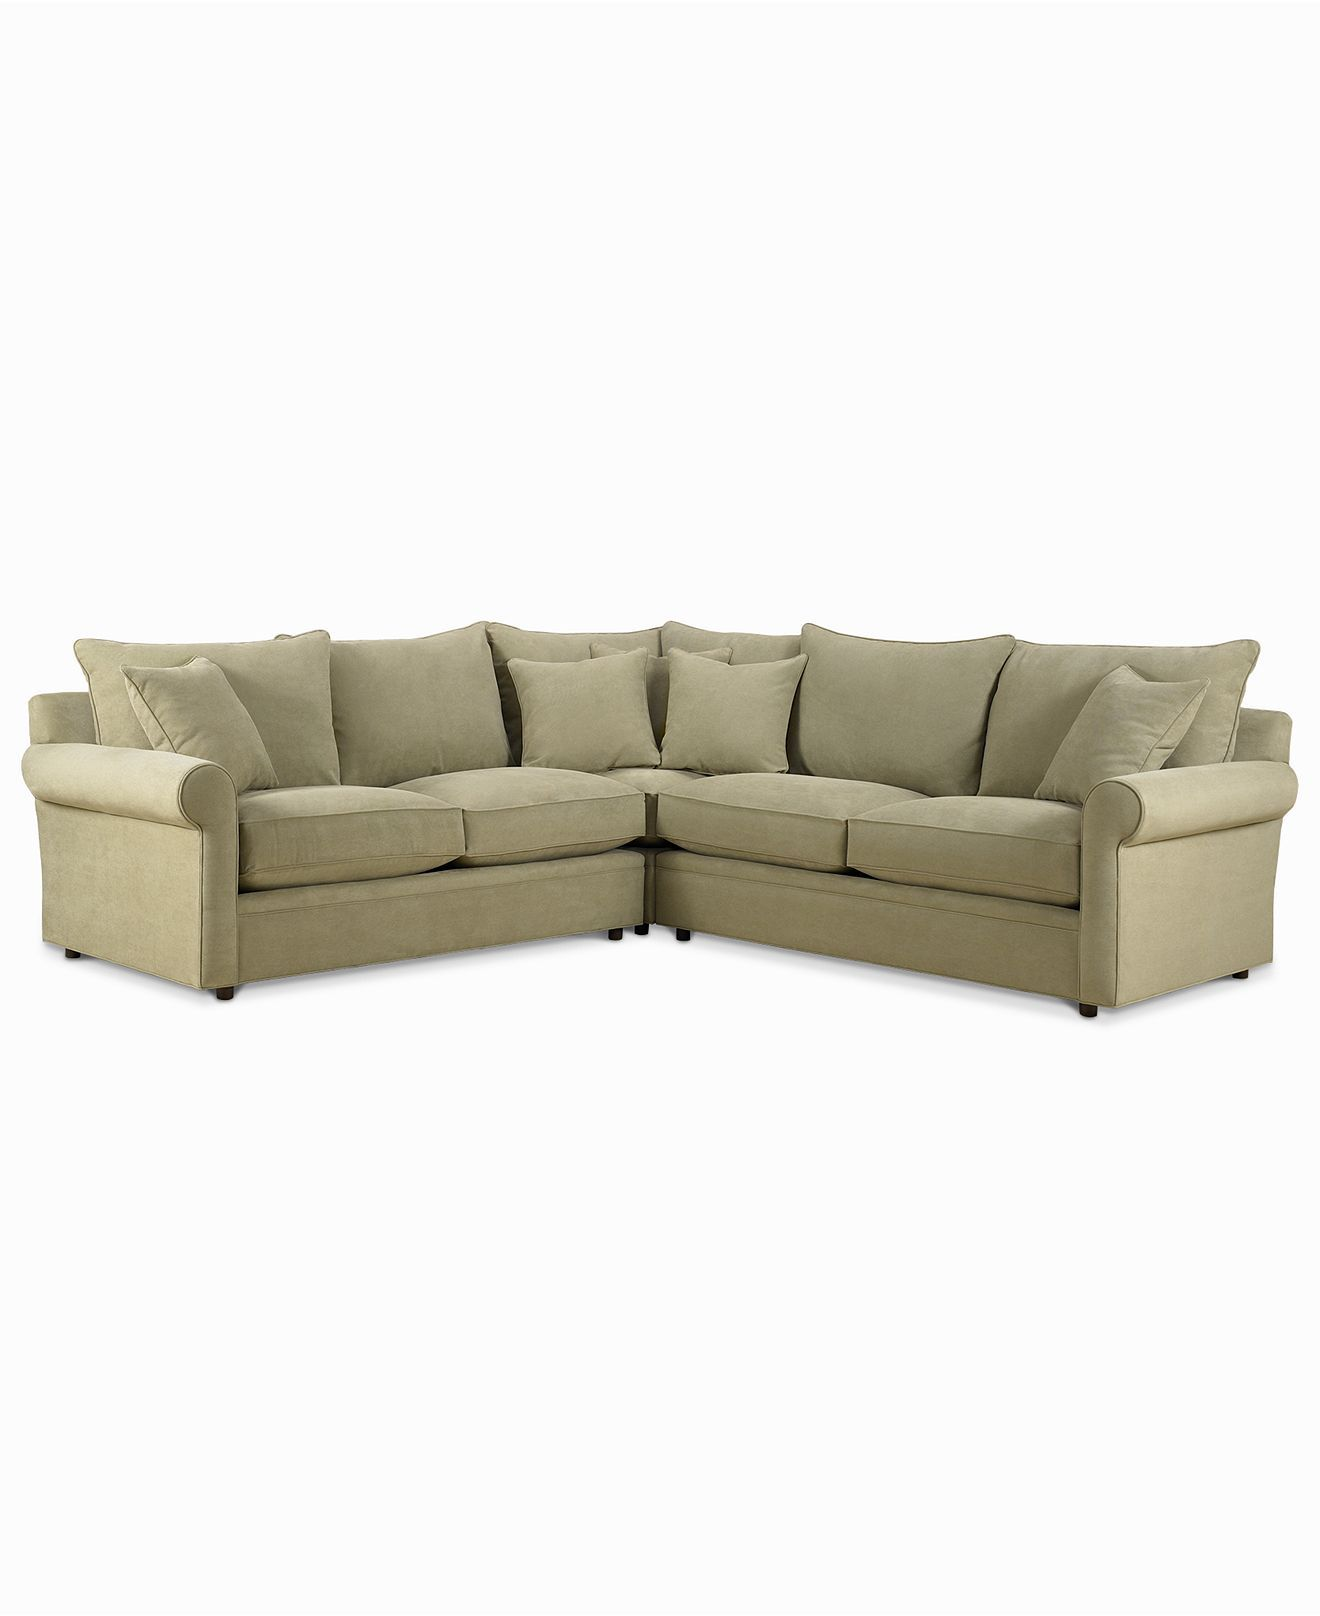 Sectional Sofas For Apartments Leather Sofa Repair Kits Rips Doss Fabric Microfiber 3 Piece Right Arm